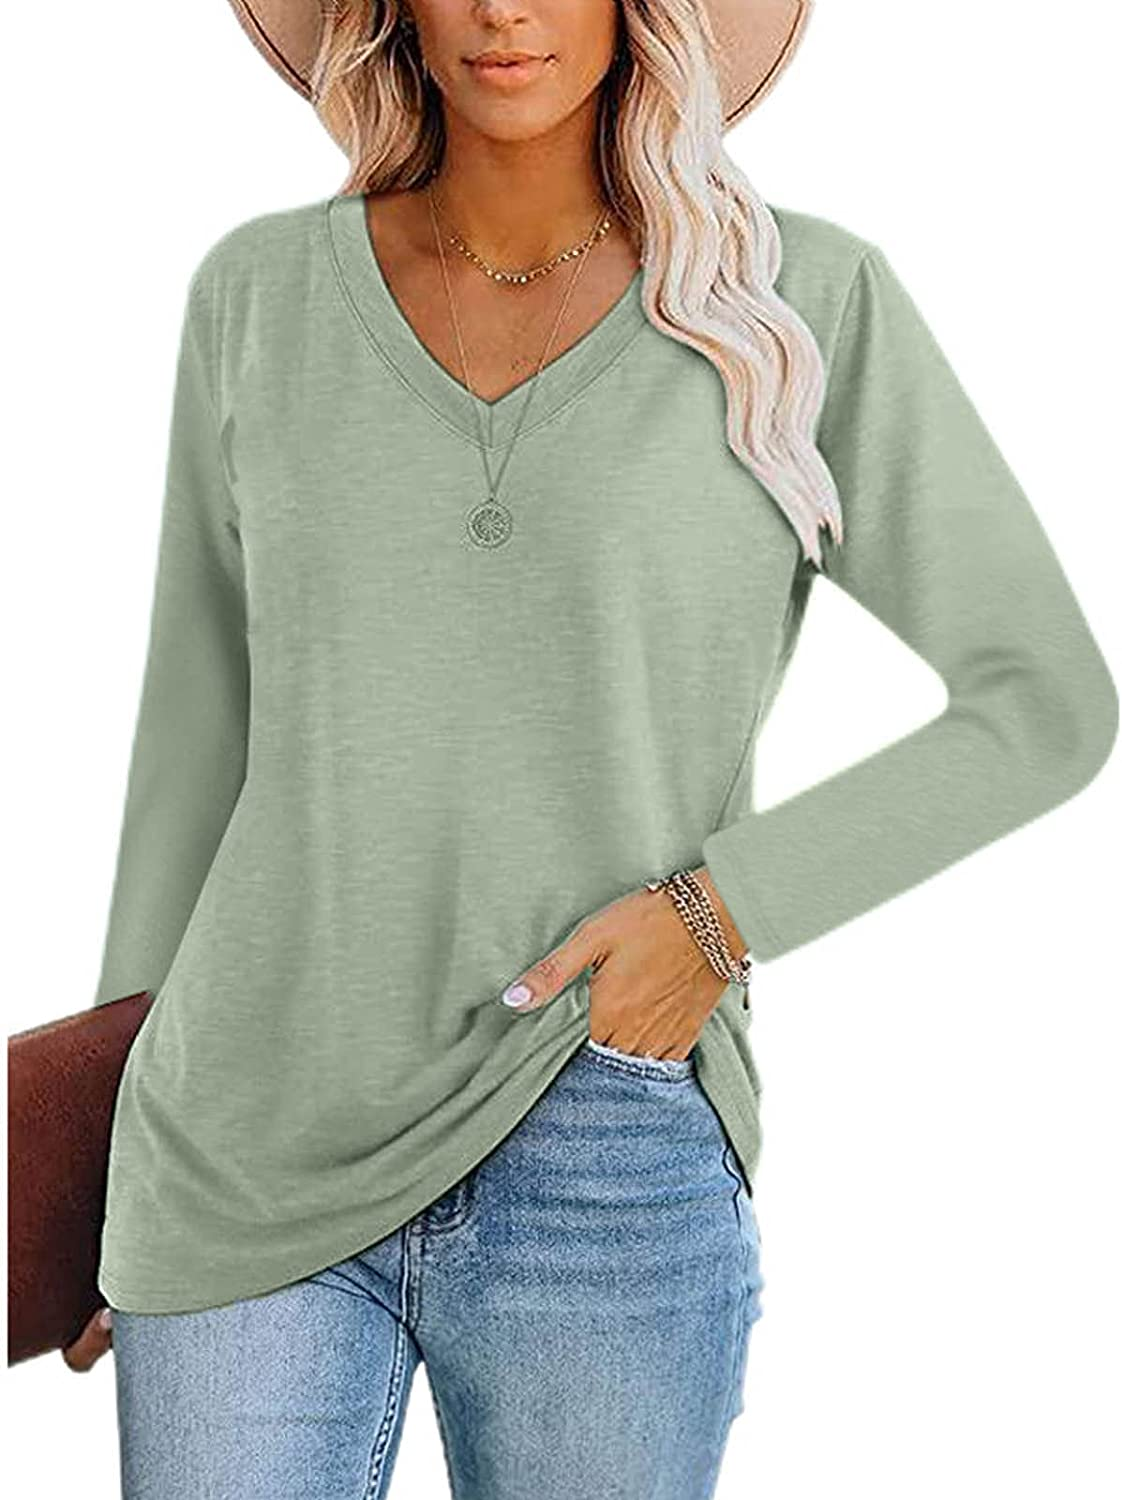 UOCUFY Sweatshirts for Women, Womens Casual Long Sleeve Sweatshirts Tops Cute Graphic Crewneck Pullover Tunic Tops